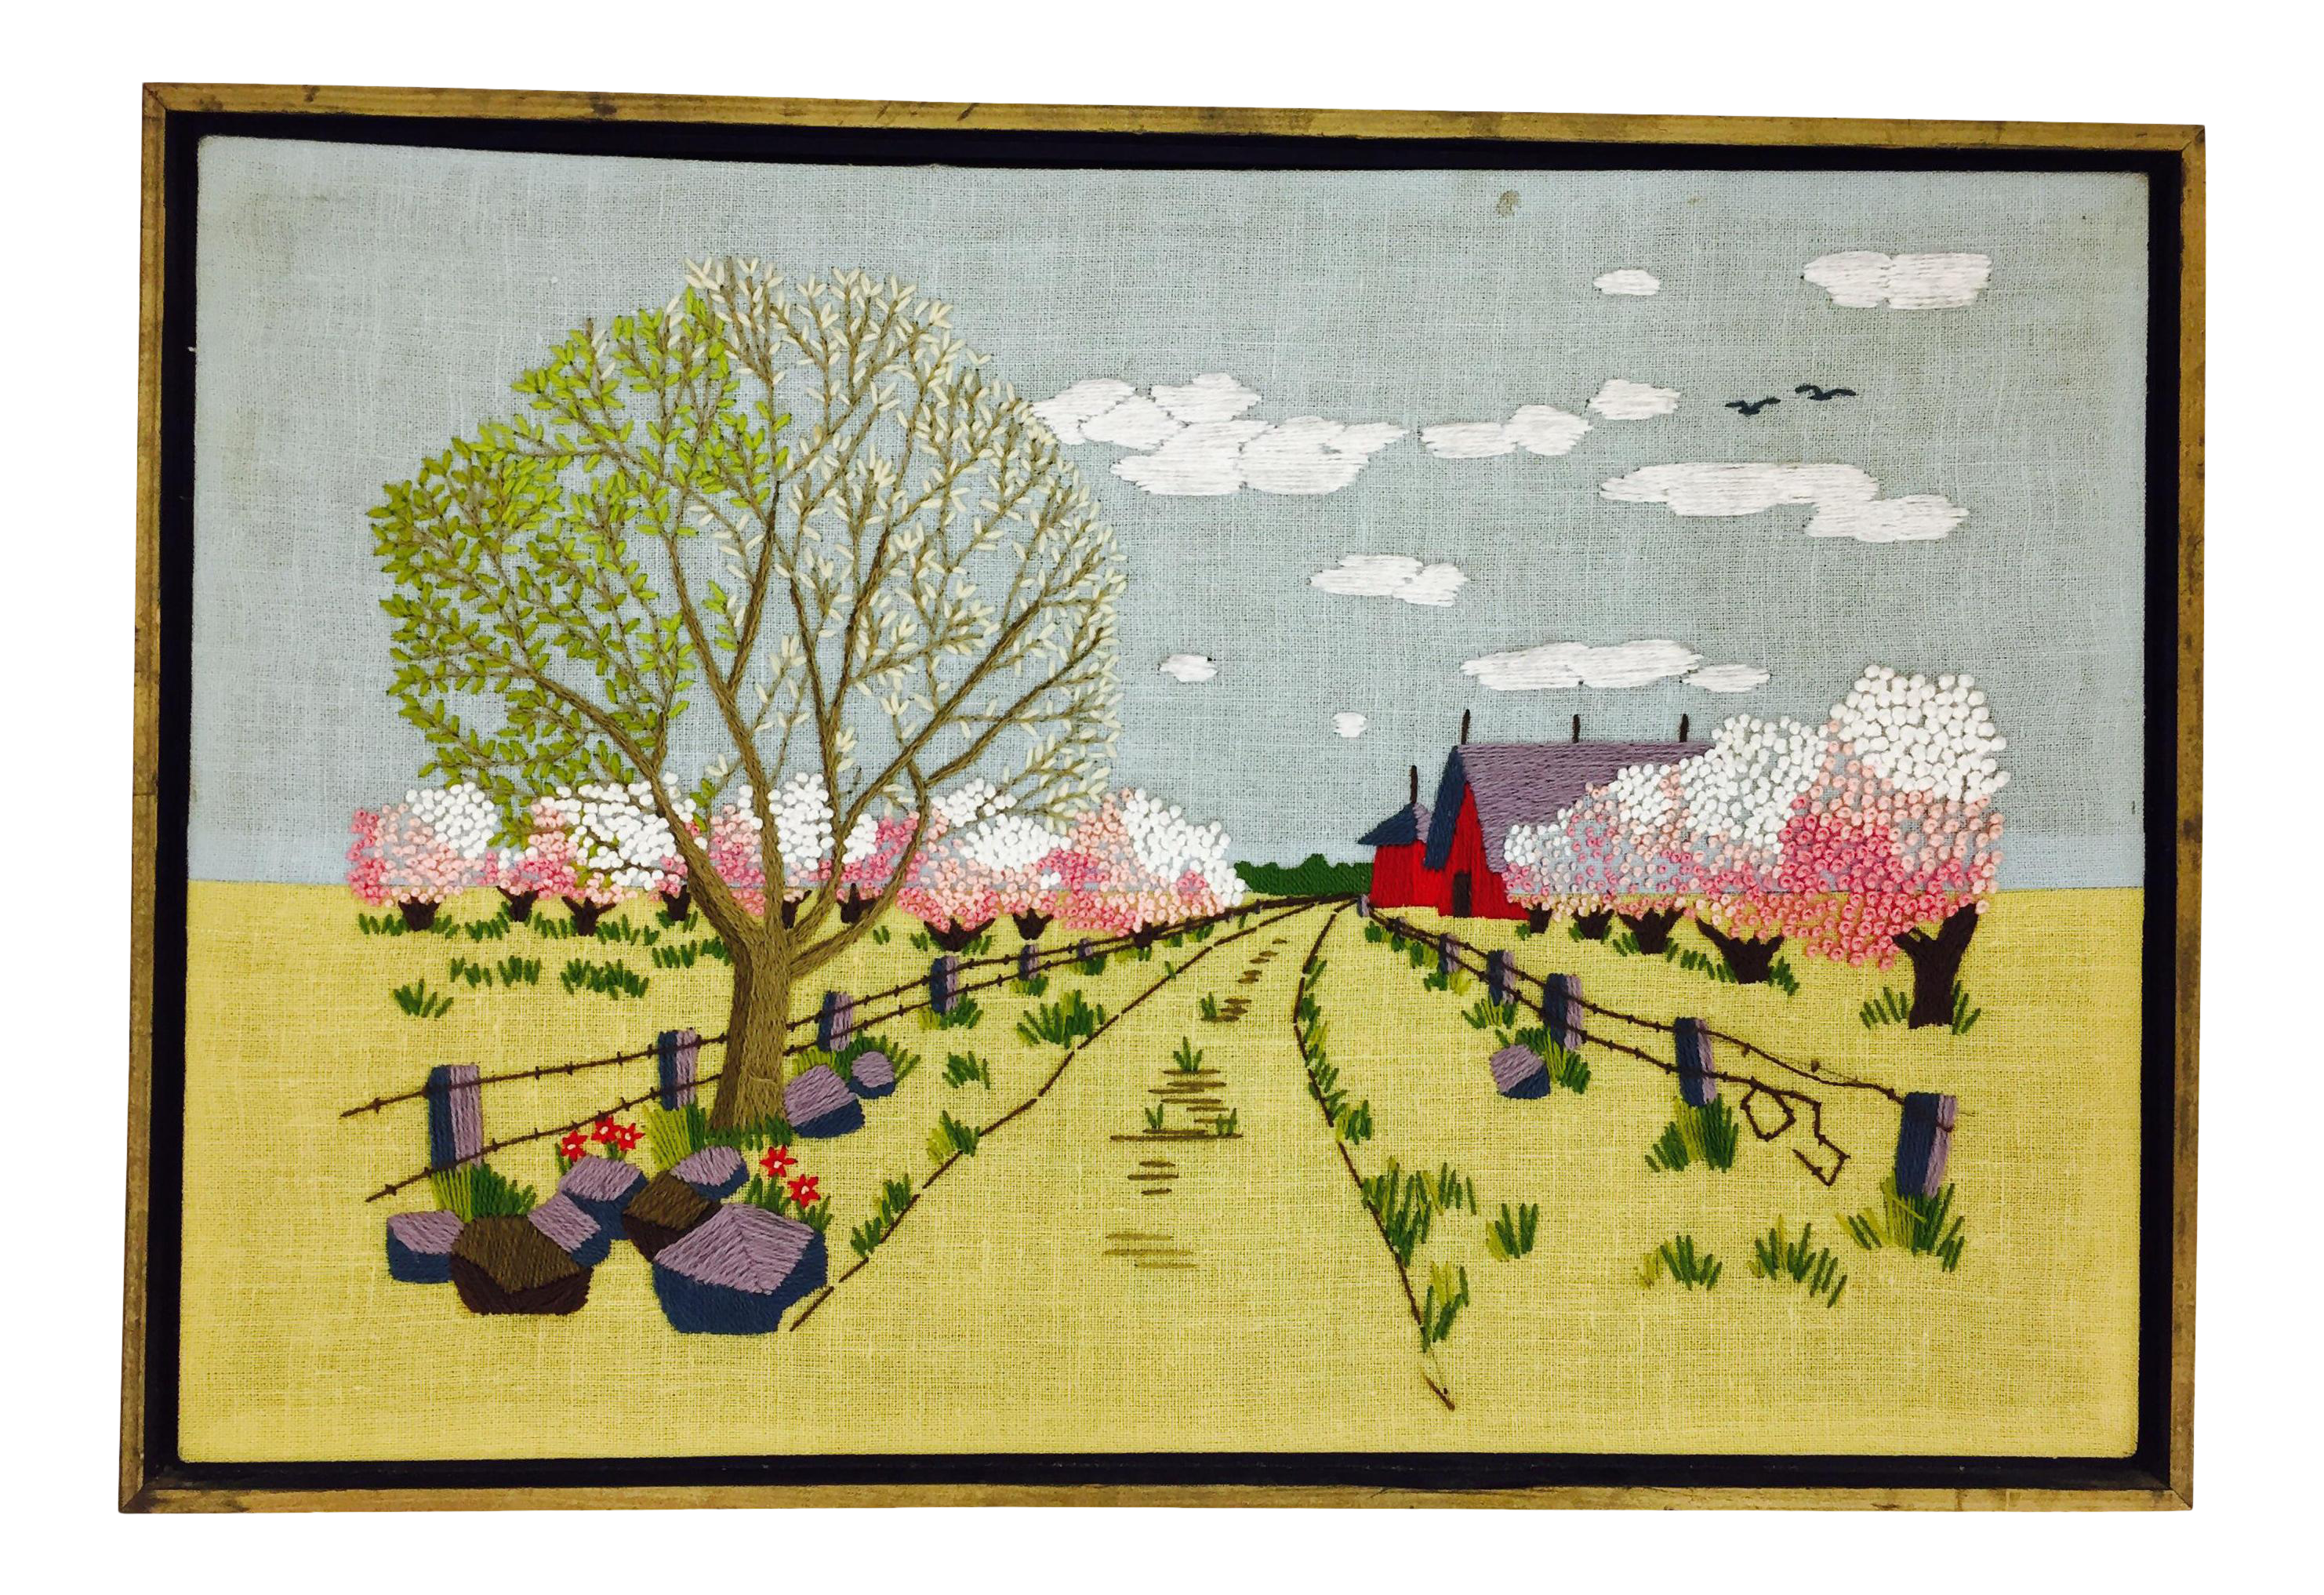 Vintage Crewel Embroidered Landscape | Chairish